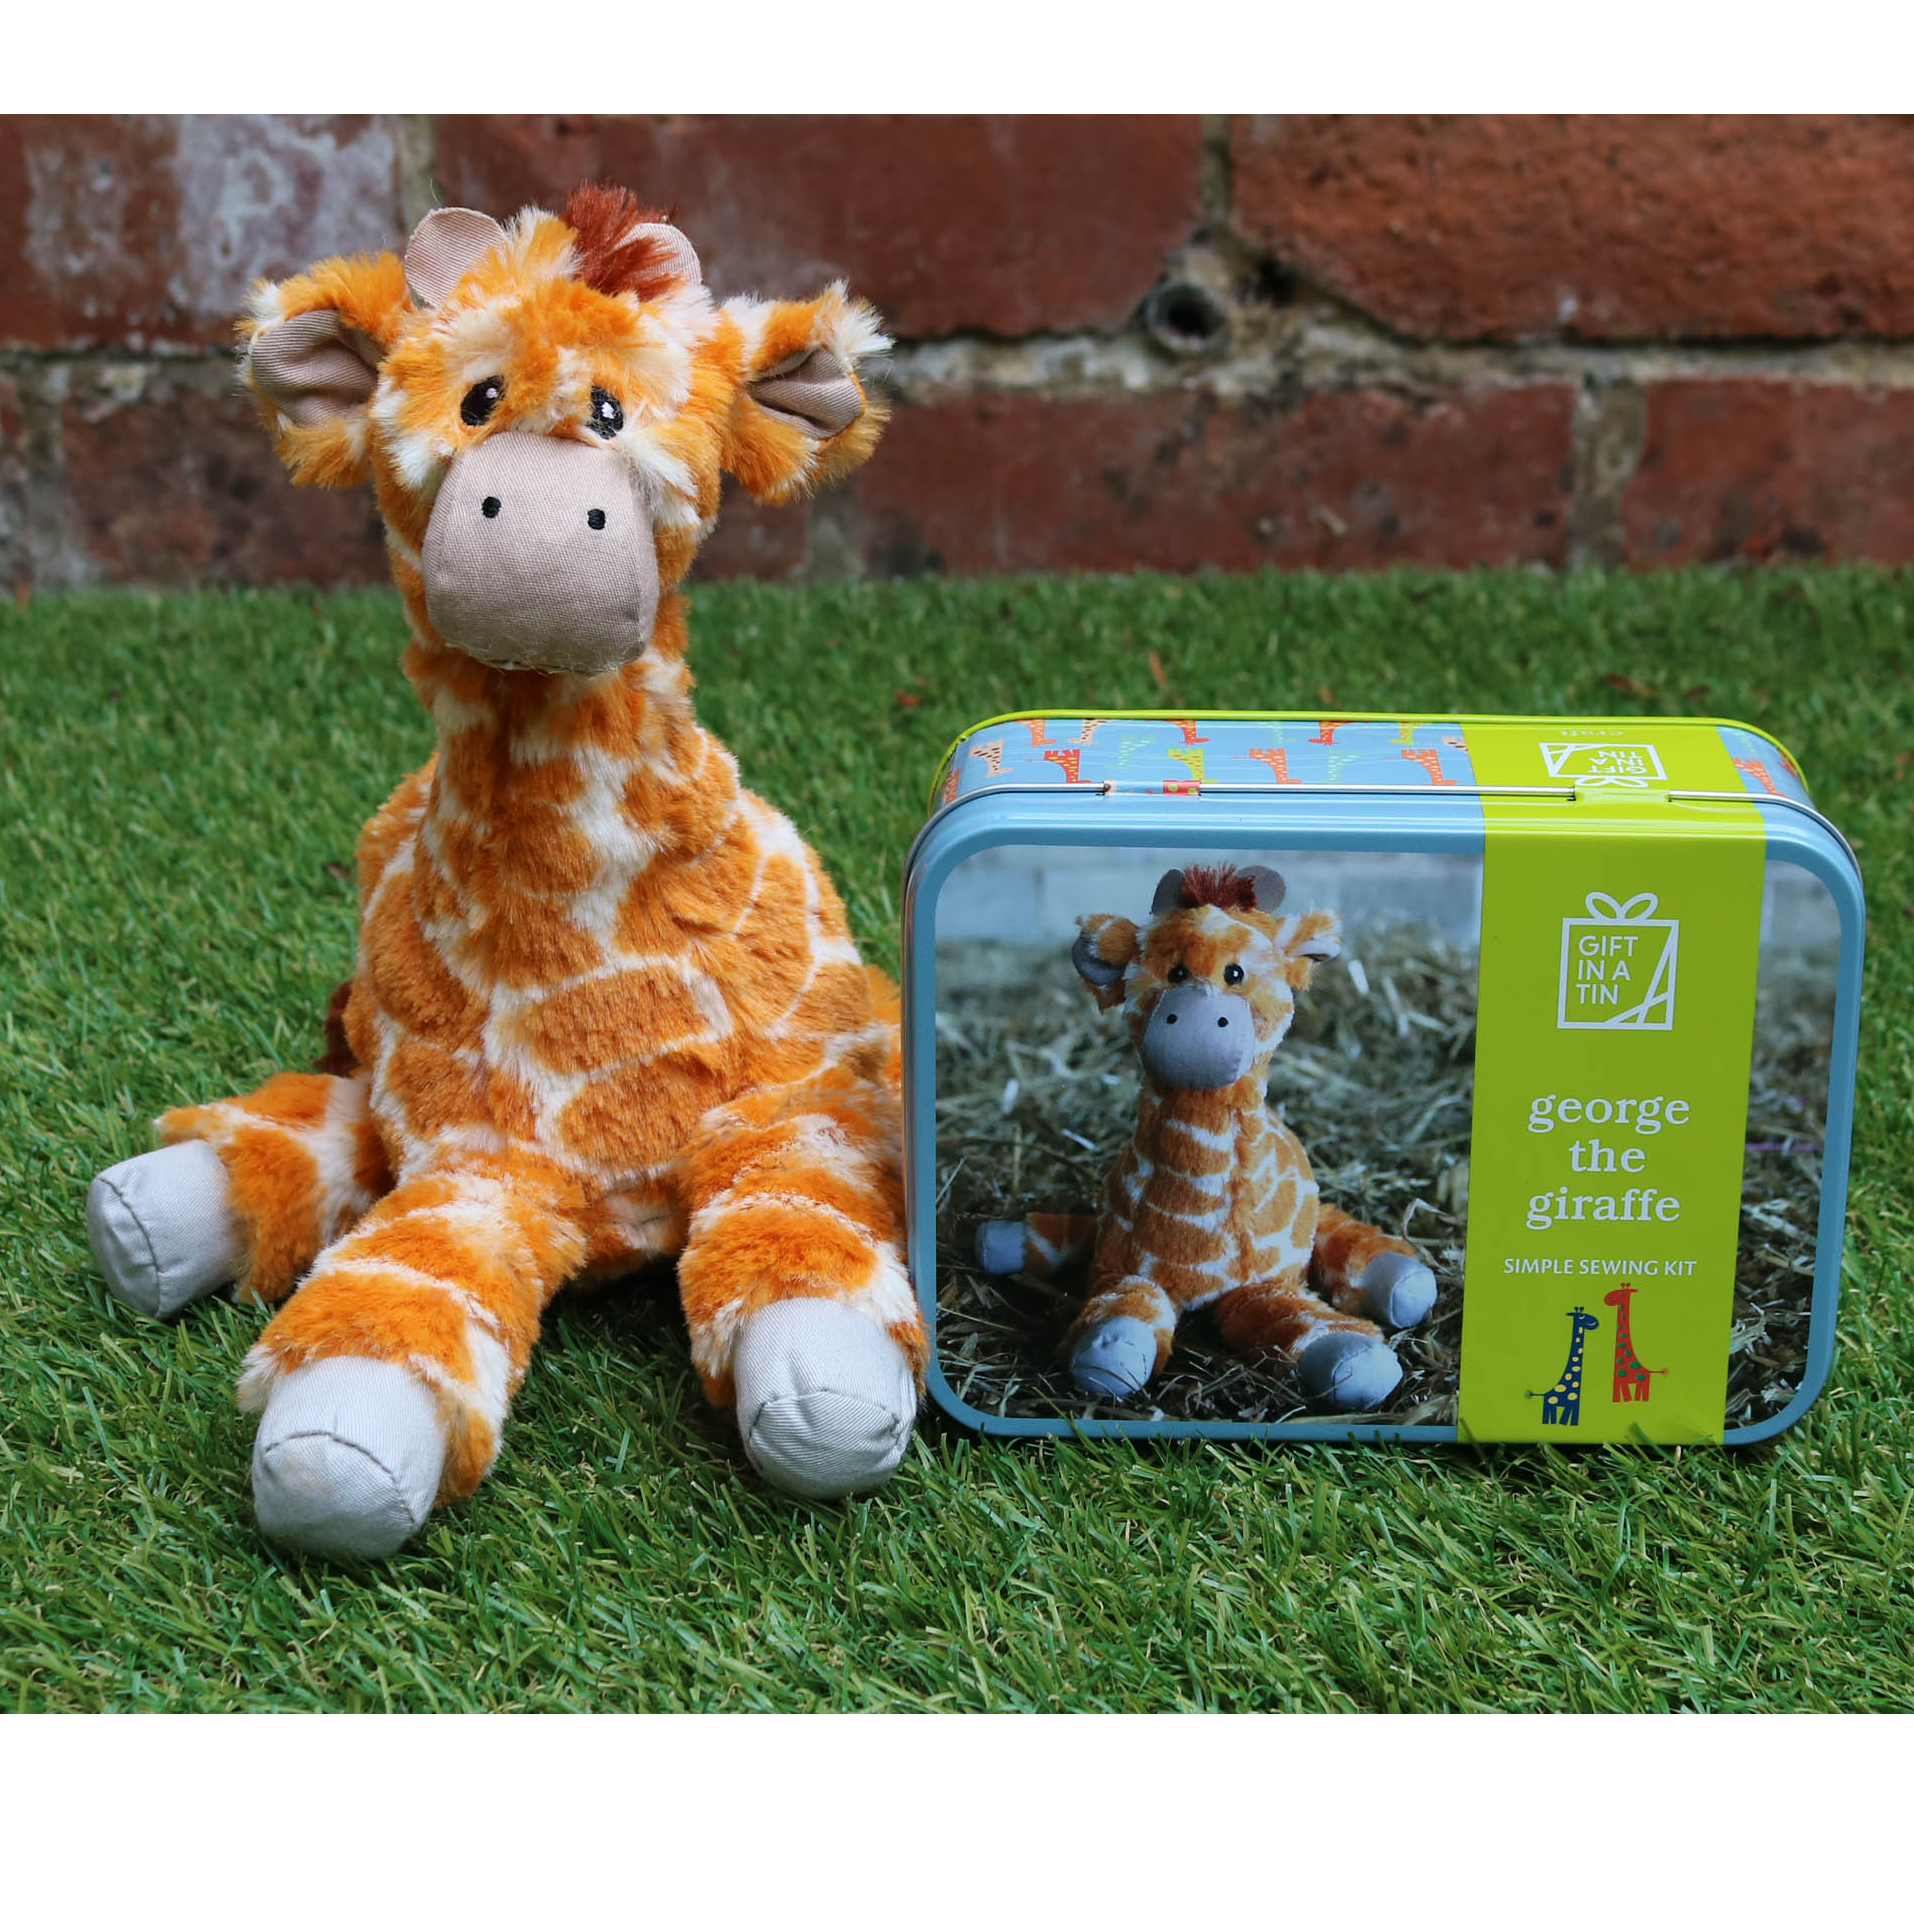 Gift in a Tin - George the Giraffe